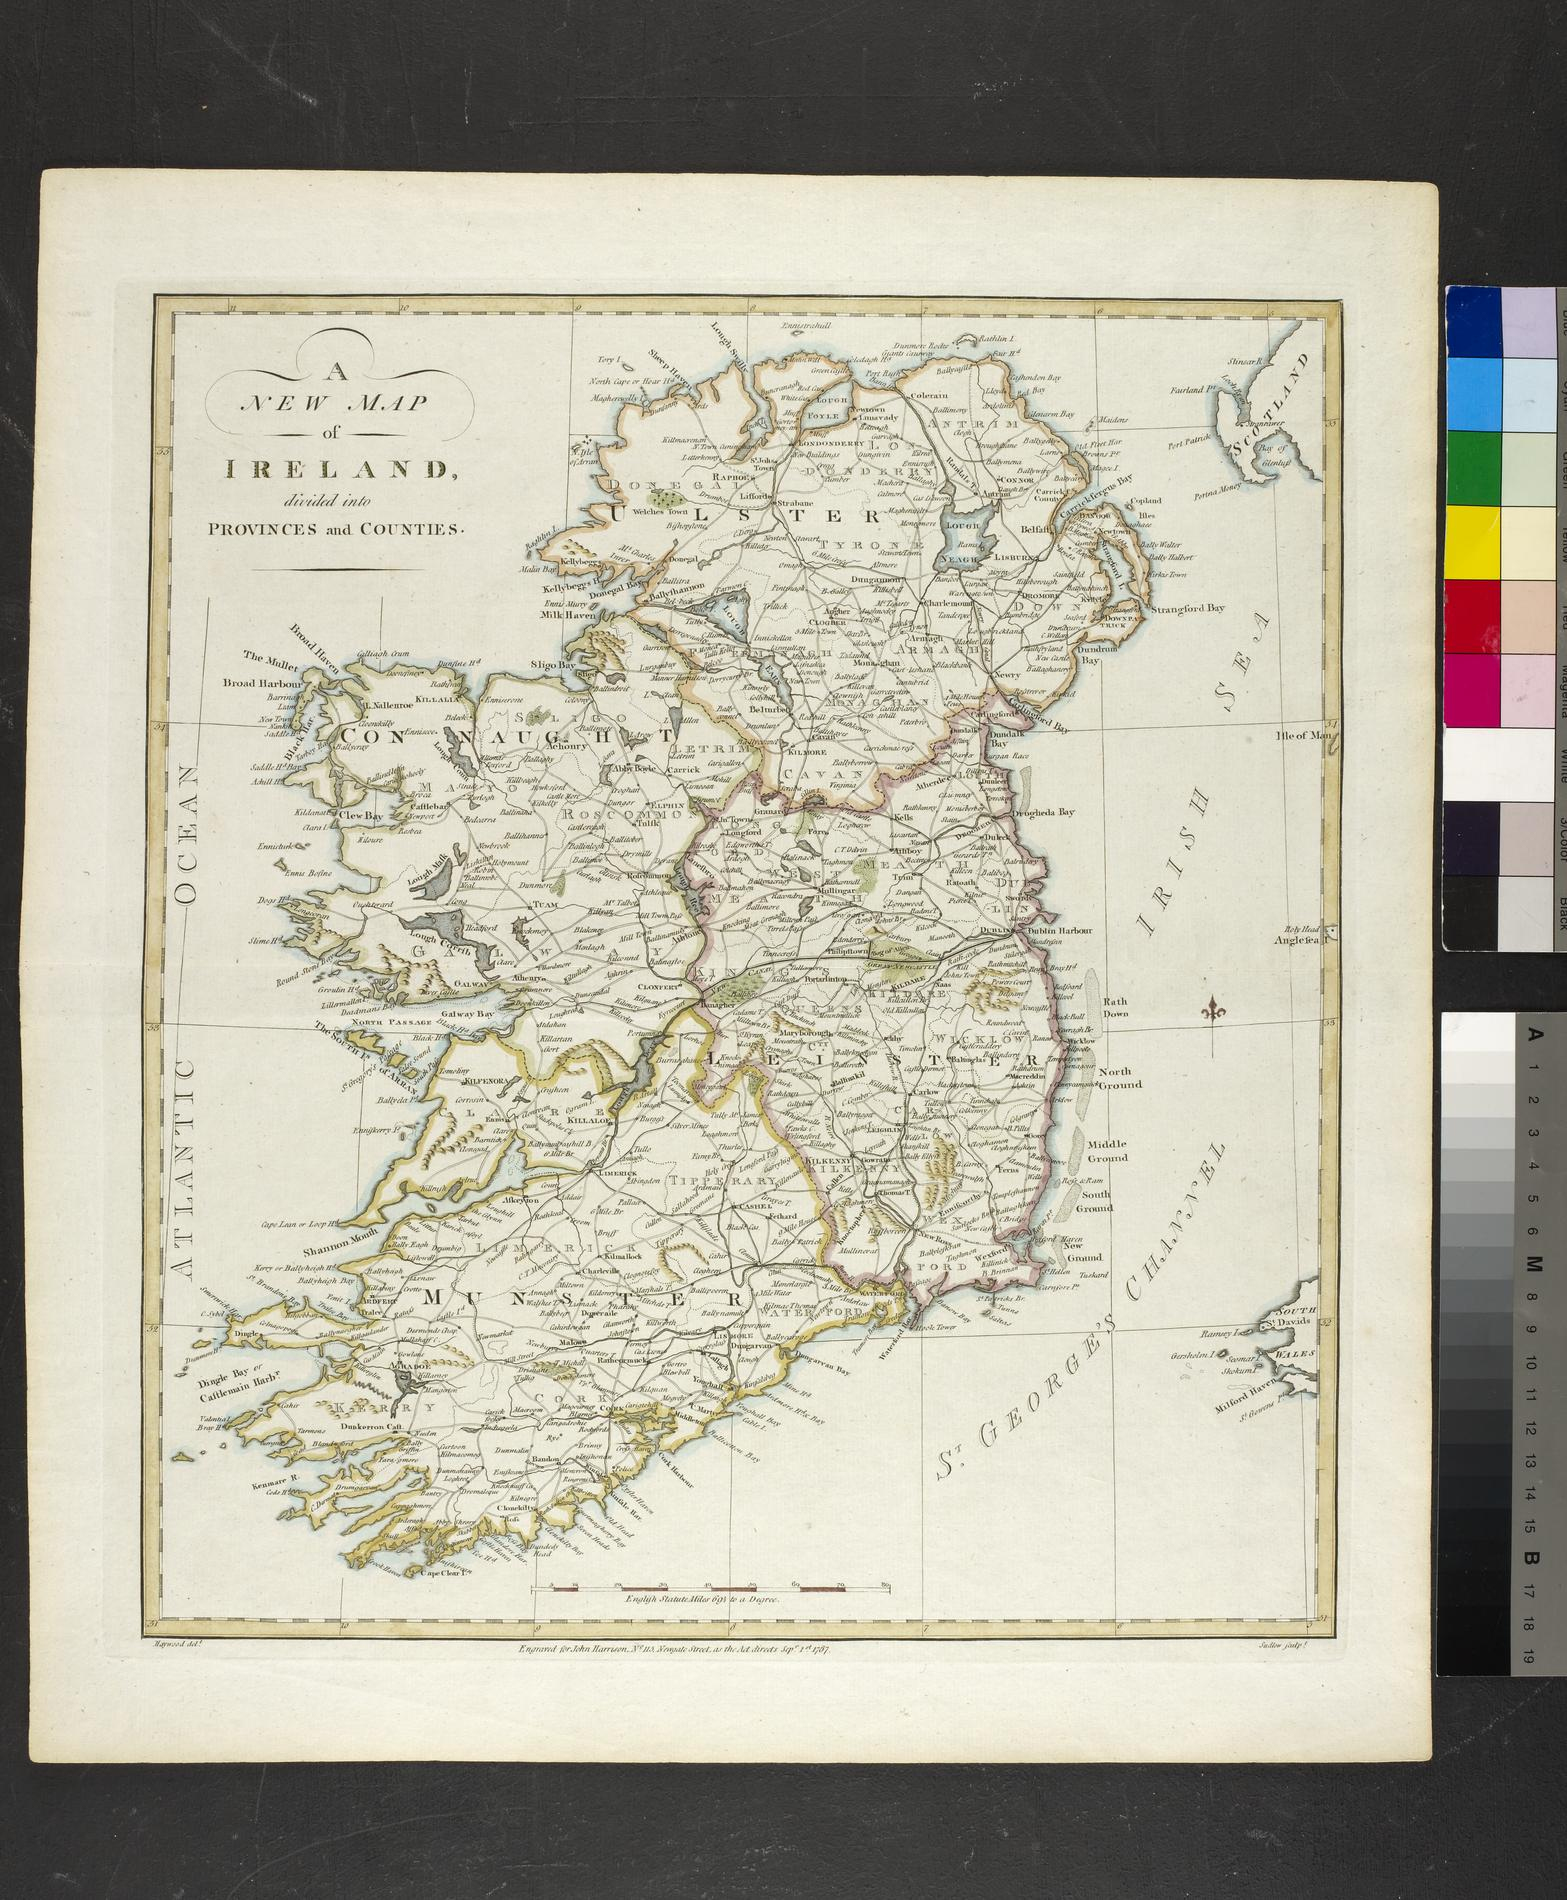 A / NEW MAP / OF / IRELAND. / DIVIDED INTO / PROVINCES AND COUNTIES (Map)